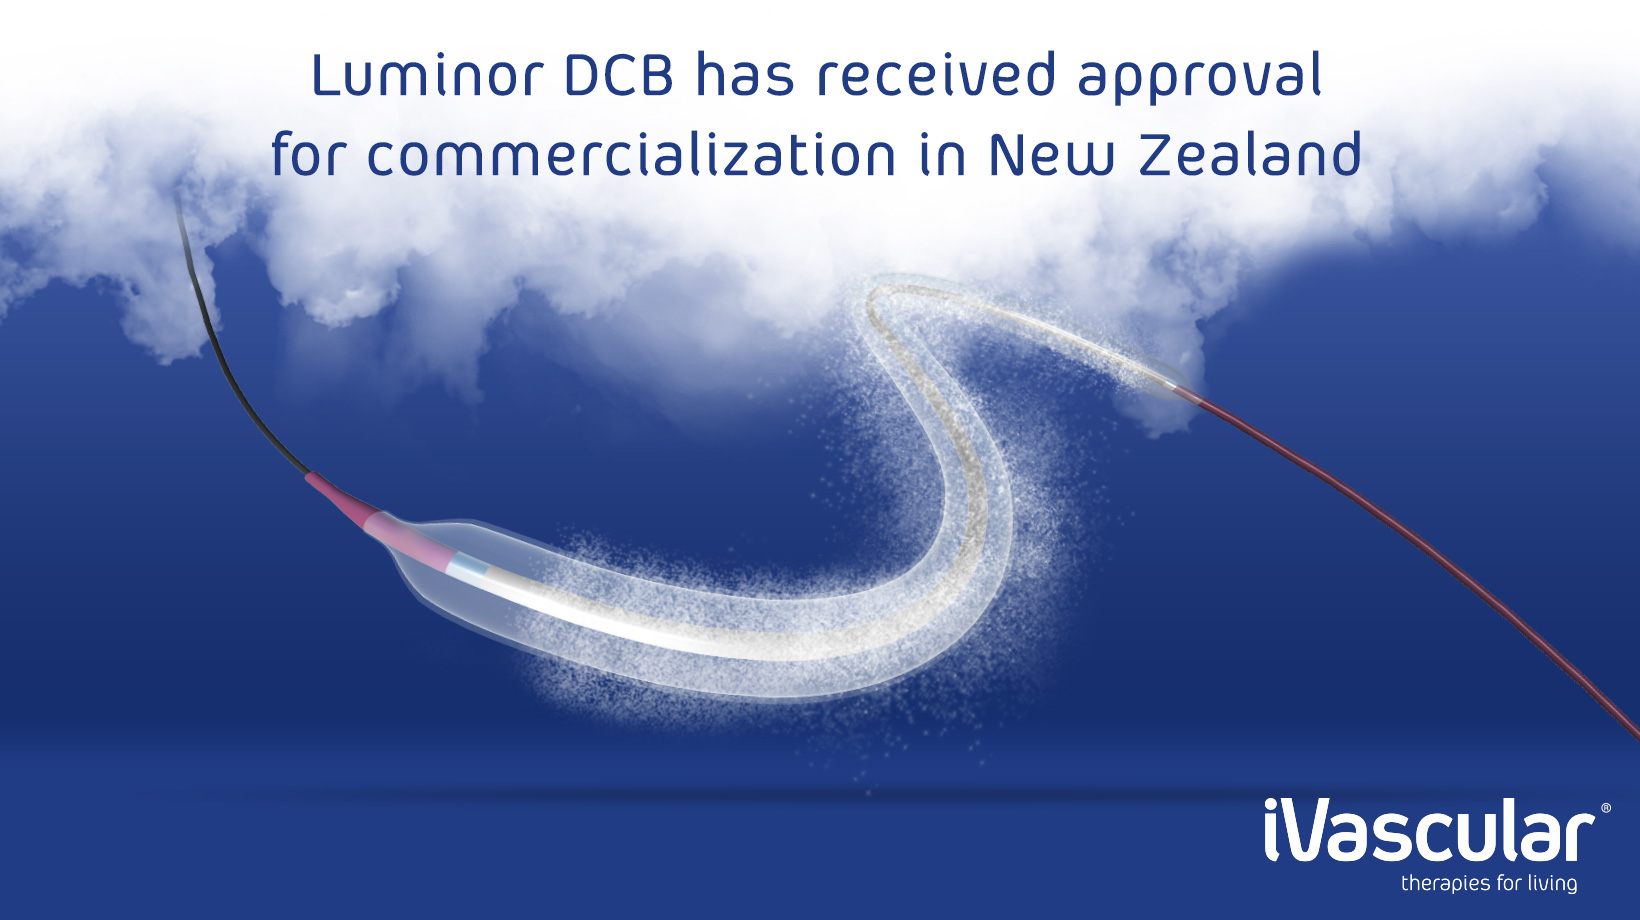 Luminor DCB received approval for commercialization in New Zealand